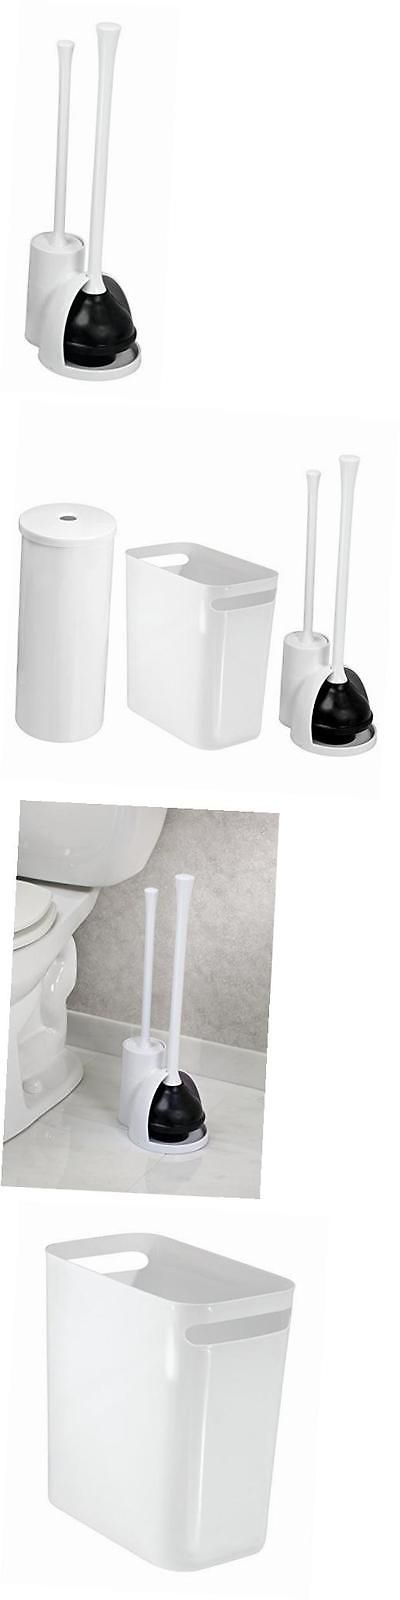 Best 25 Toilet Brush Ideas On Pinterest Tiny Bathrooms